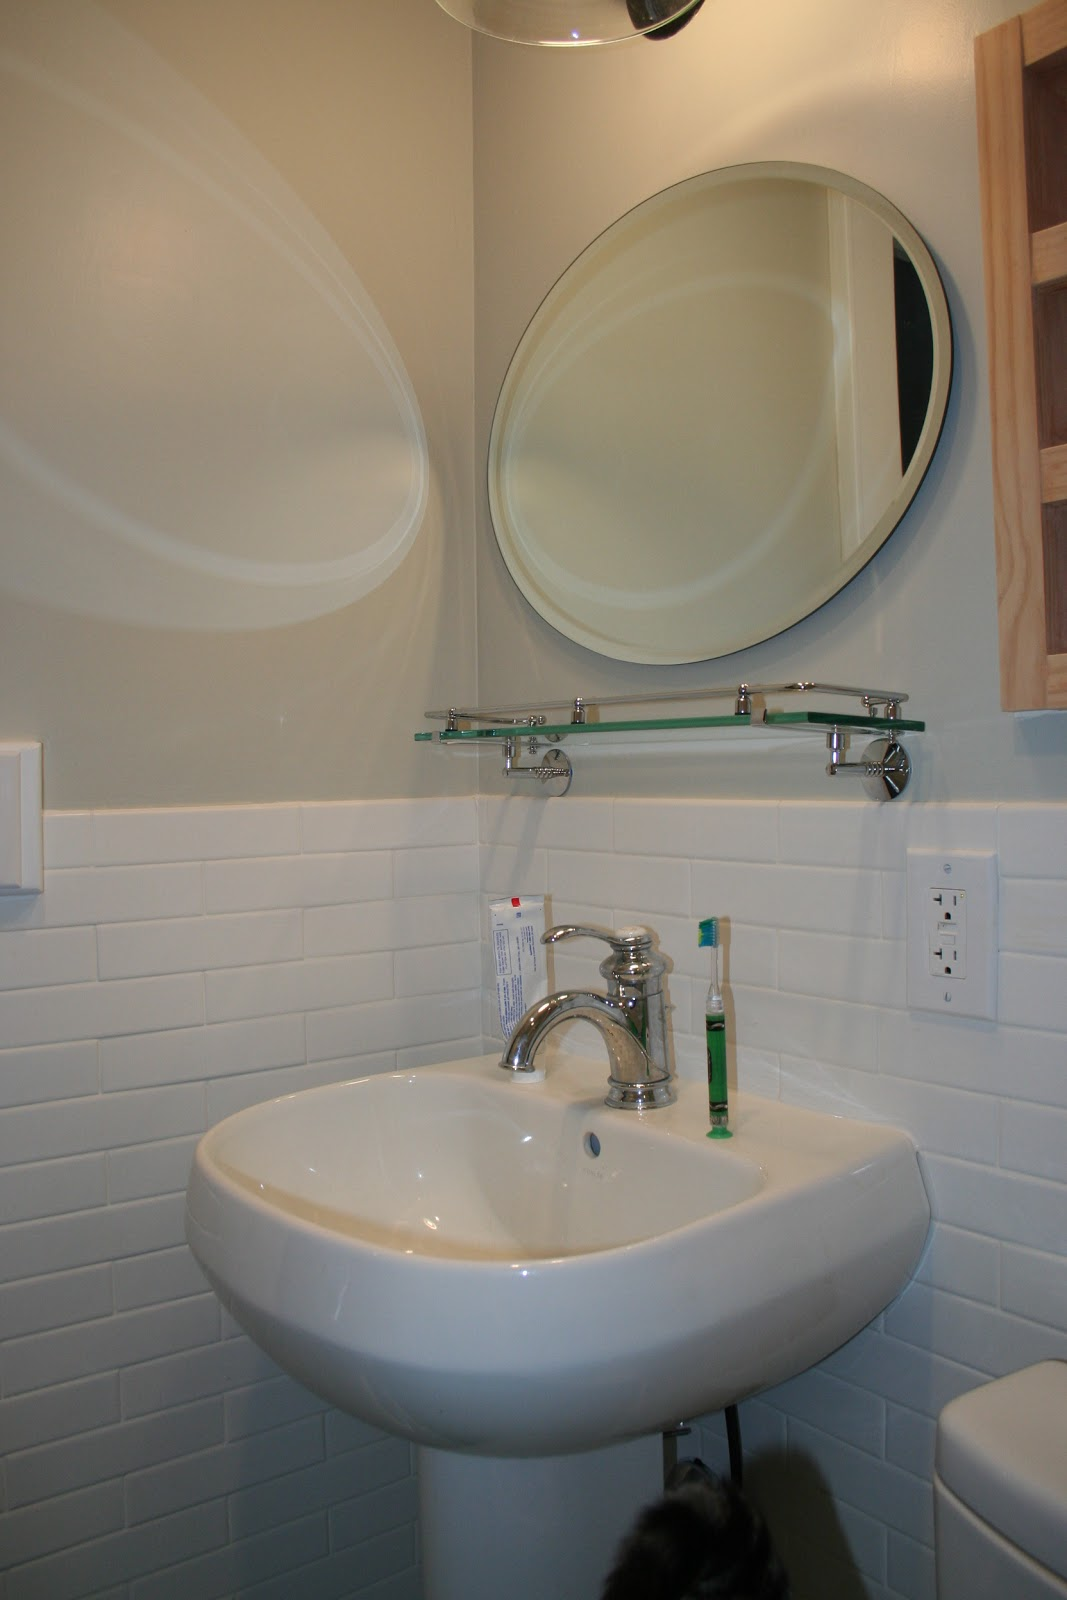 Another 100 year old house renovation: Bathroom reno completed